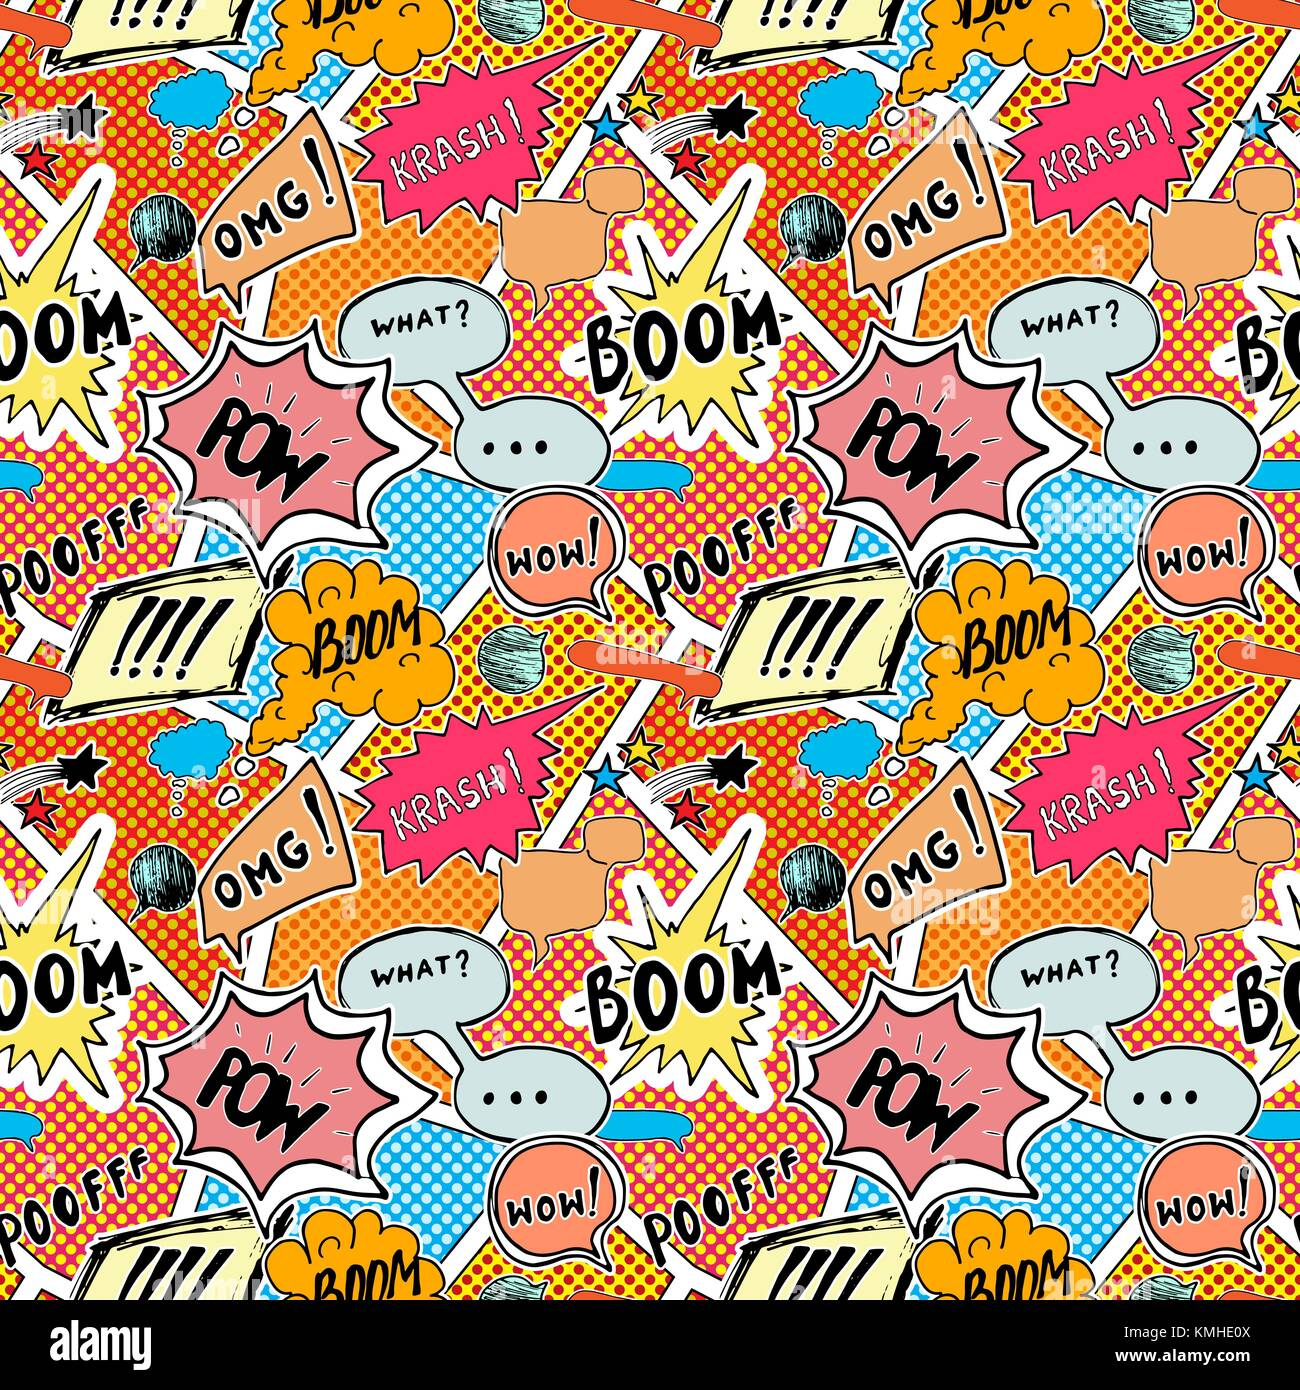 Seamless pattern background with handdrawn comic book speech bubbles